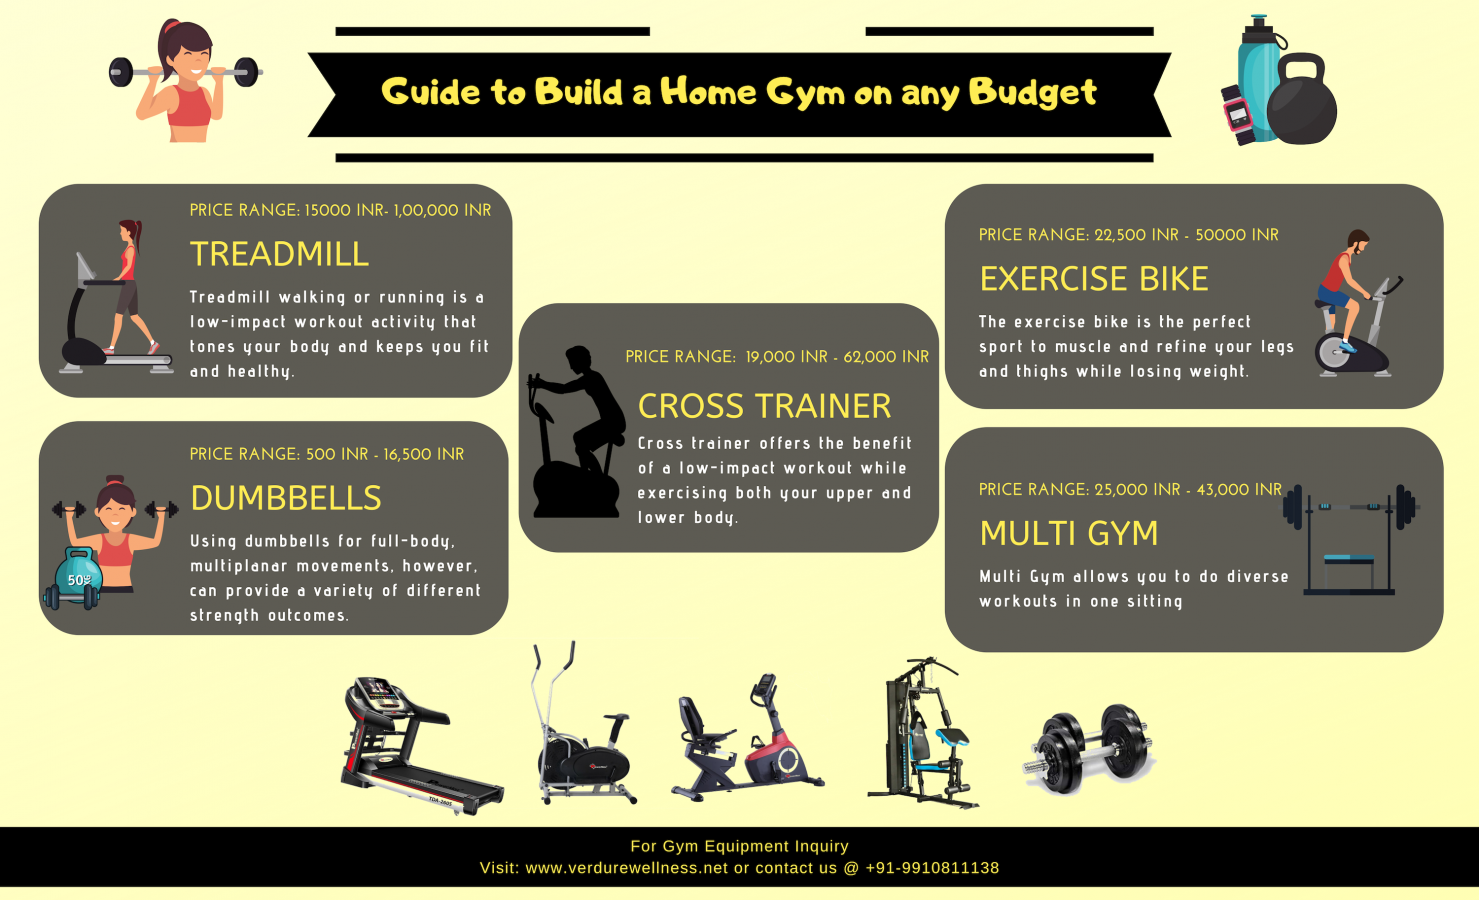 Guide to Build a Home Gym on Any Budget